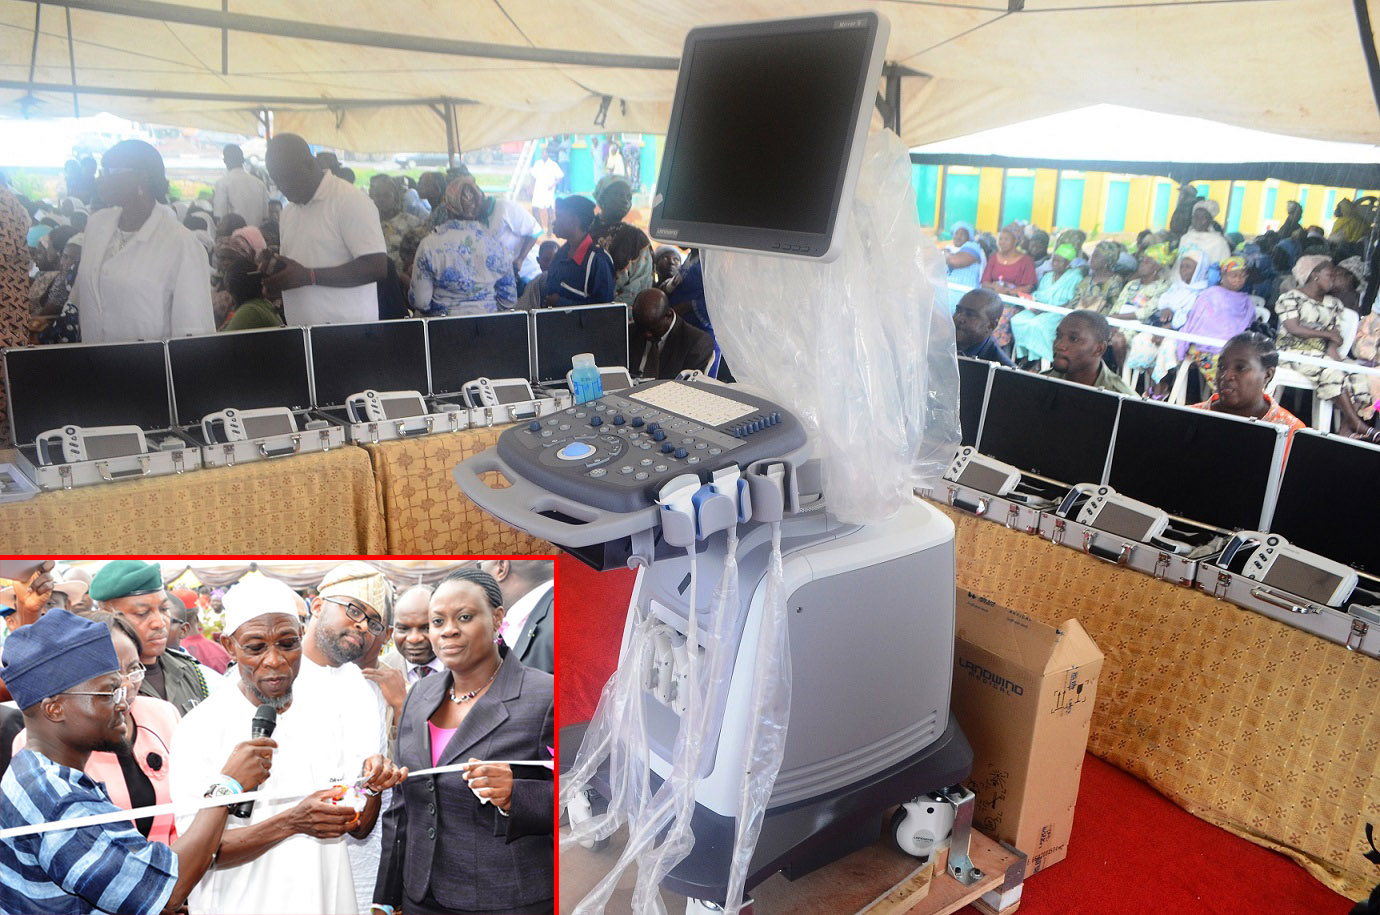 The newly Commissioned Hand-held Ultrasound Diagnostic (Touch Screen) Scanners and Mirror 3D (colour) Doppler Ultrasound Diagnostic Scanner distributed to State hospitals in Osun at Nelson Mandela Freedom Park, Osogbo, State of Osun. Insert: From right, Commissioner for Health, Dr Temitope Ilori; Governor State of Osun, Ogbeni Rauf Aregbesola; Special Adviser for Health, Dr Rafiu Isamotu and others on Thursday 17-07-2014